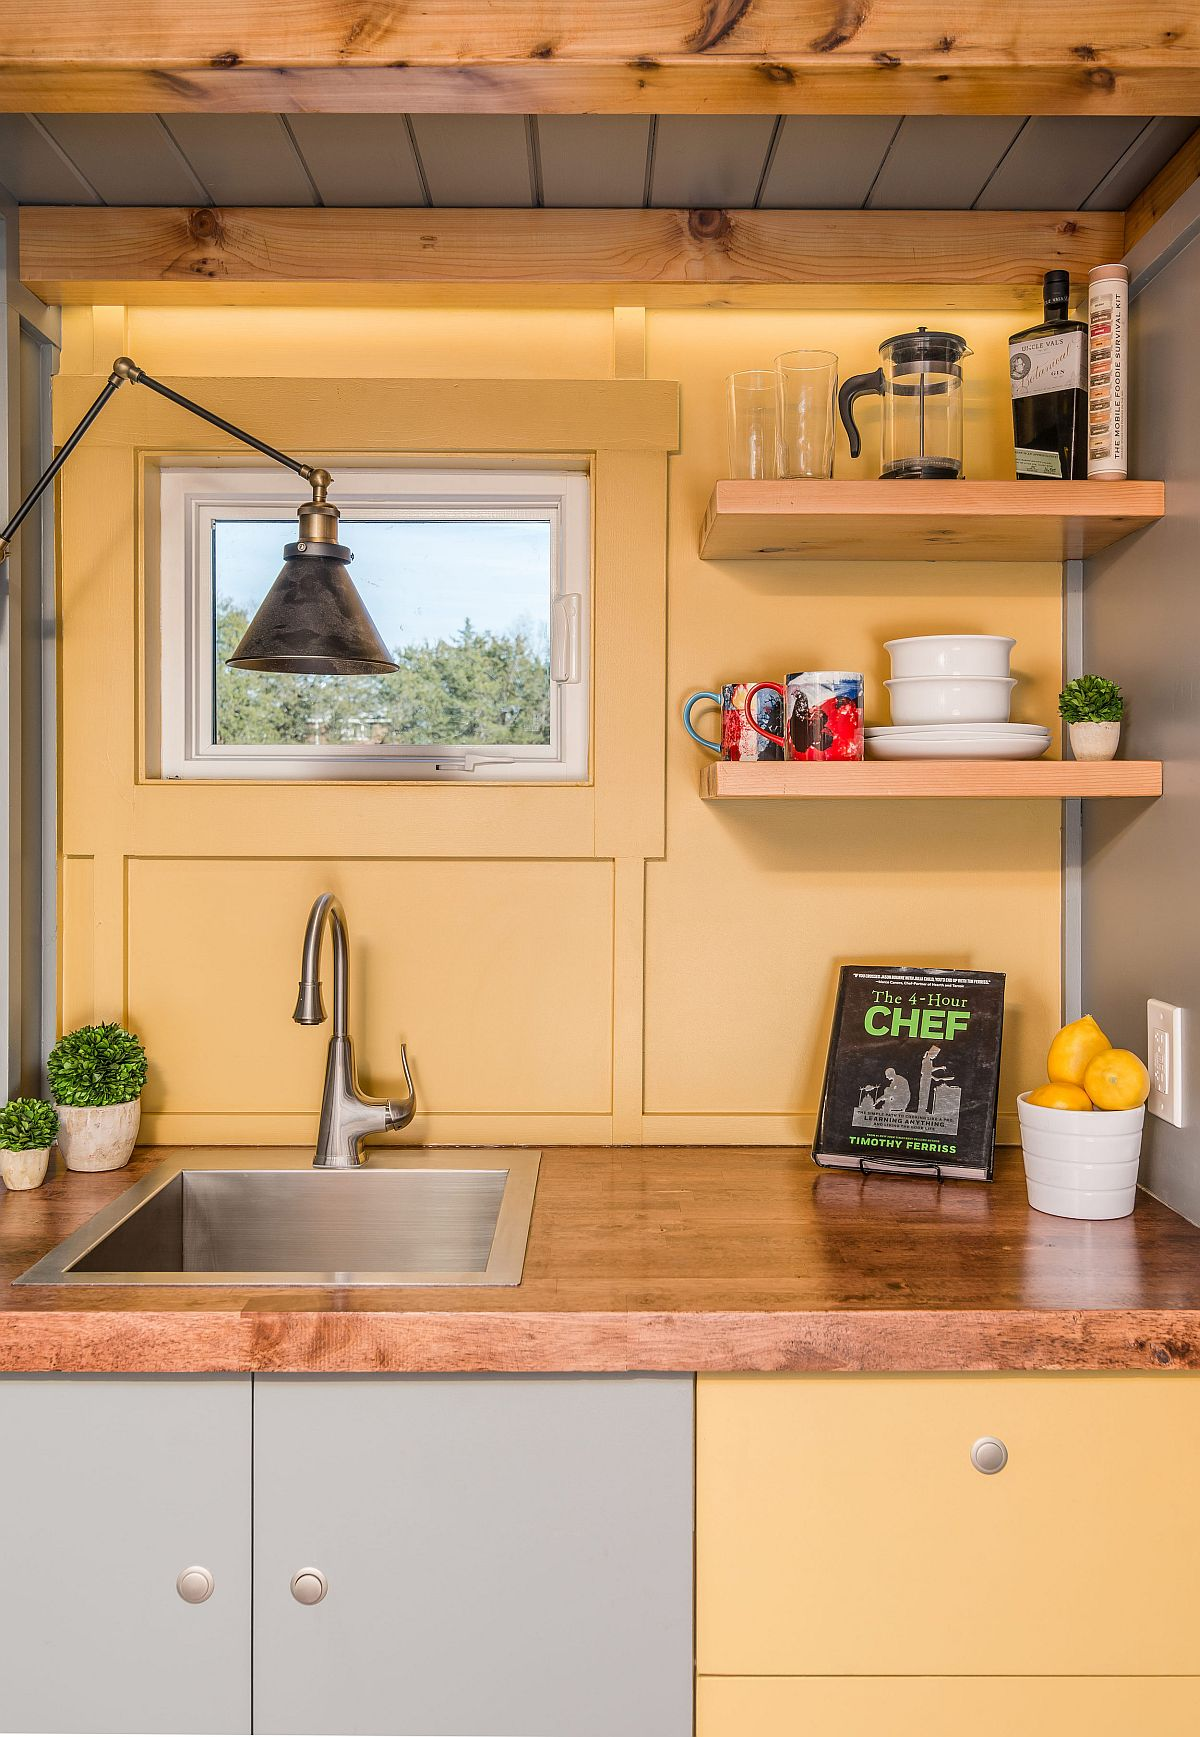 Closer look at the ultra-tiny kitchen in yellow and gray